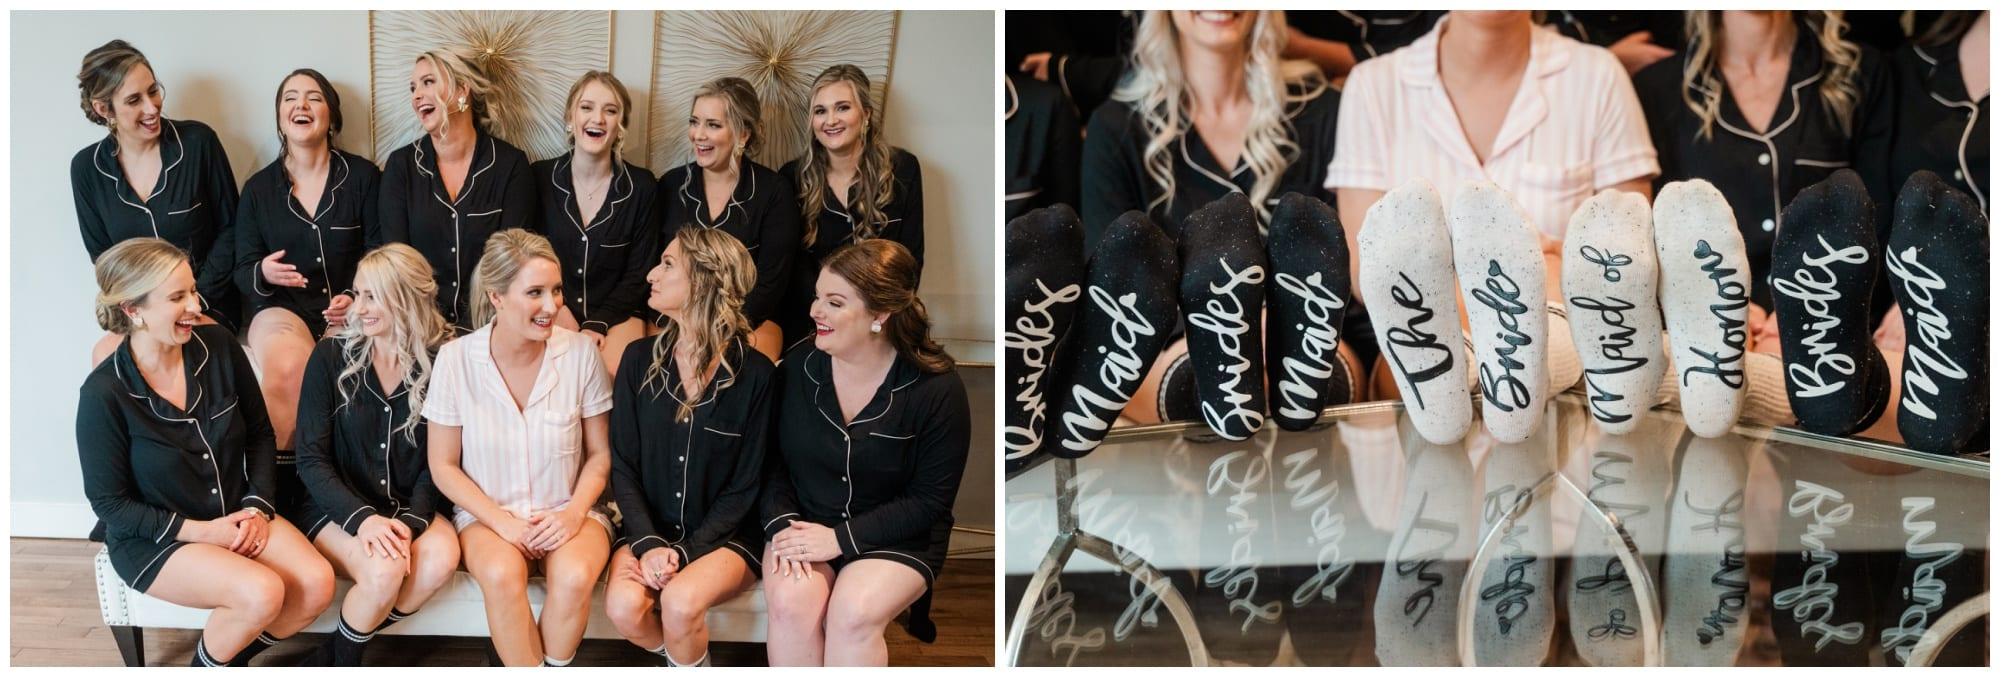 brides in matching pjs with wedding socks